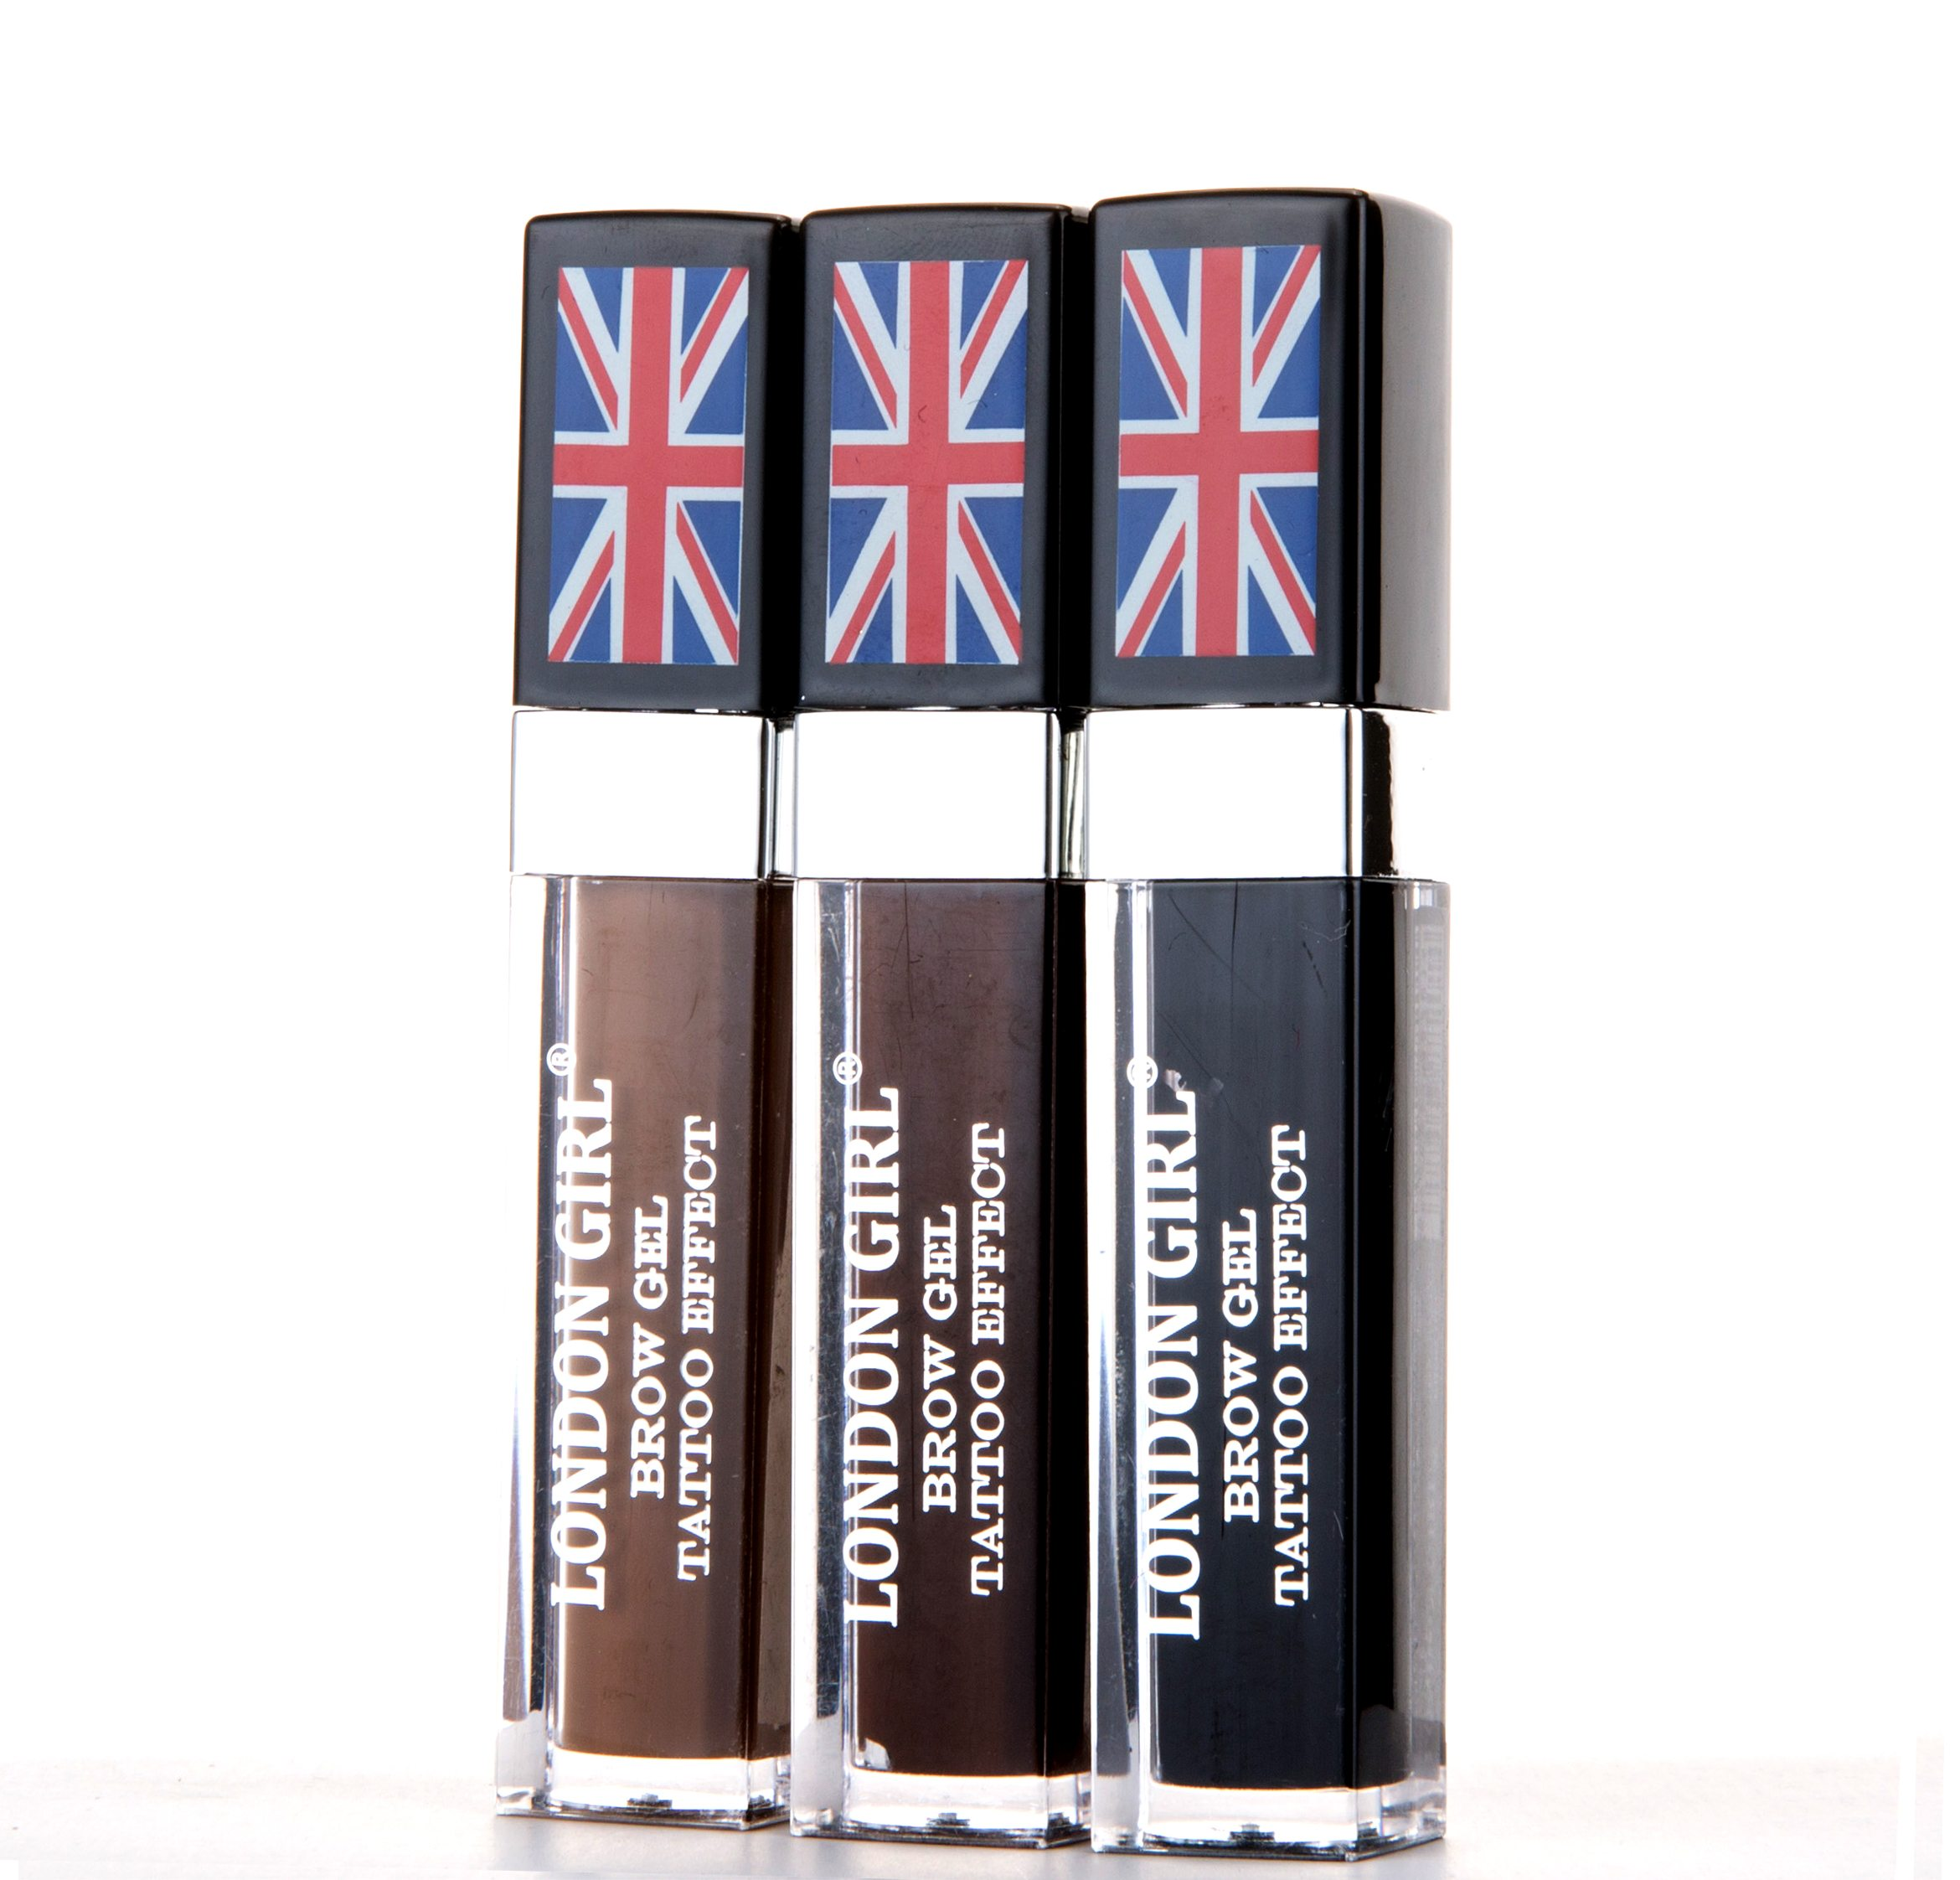 London Girl Brow Gel Tattoo Effect 3 Shades Available Mirage